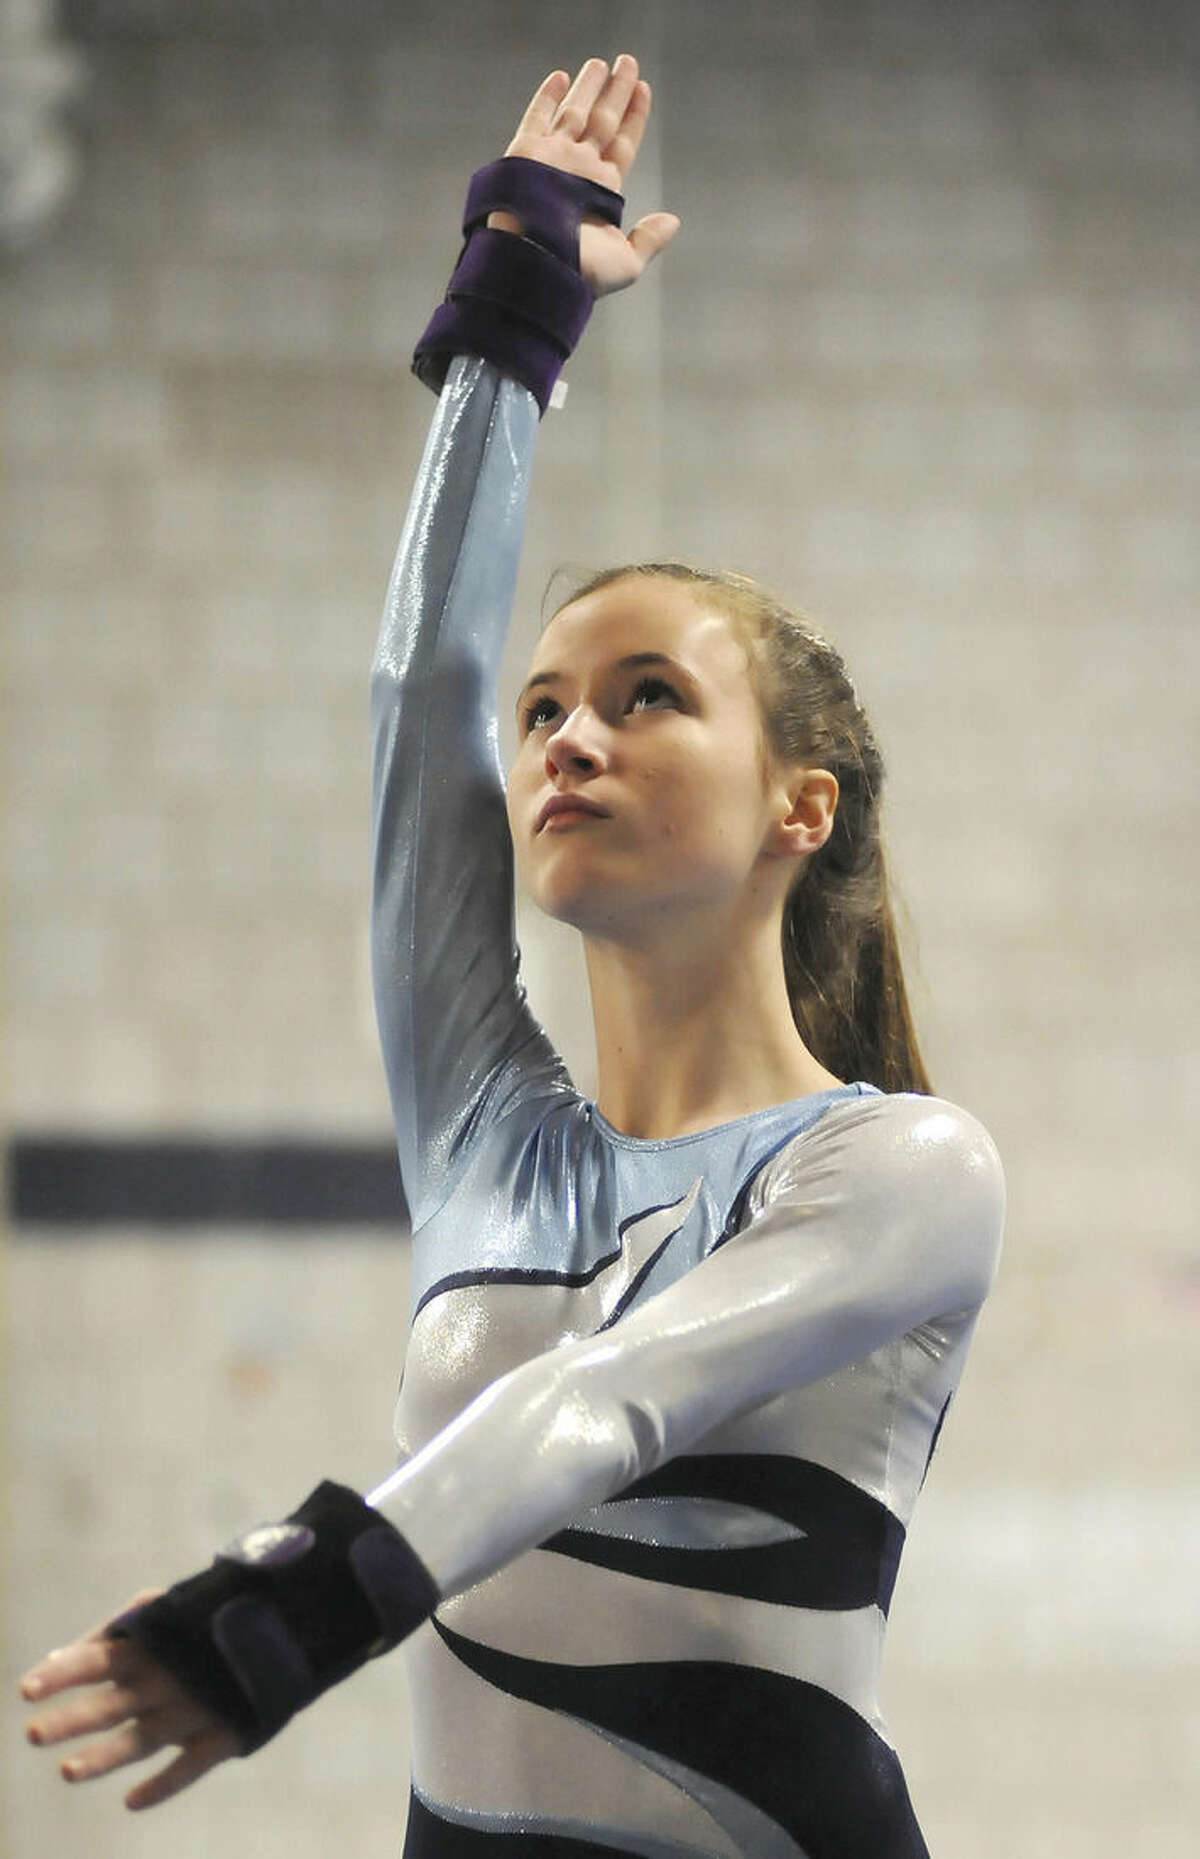 Hour photo/John Nash Wilton's Meredith Nash competes at the FCIAC championships last year. Nash returns to a Warriors squad that expects to contend in a competitive FCIAC.